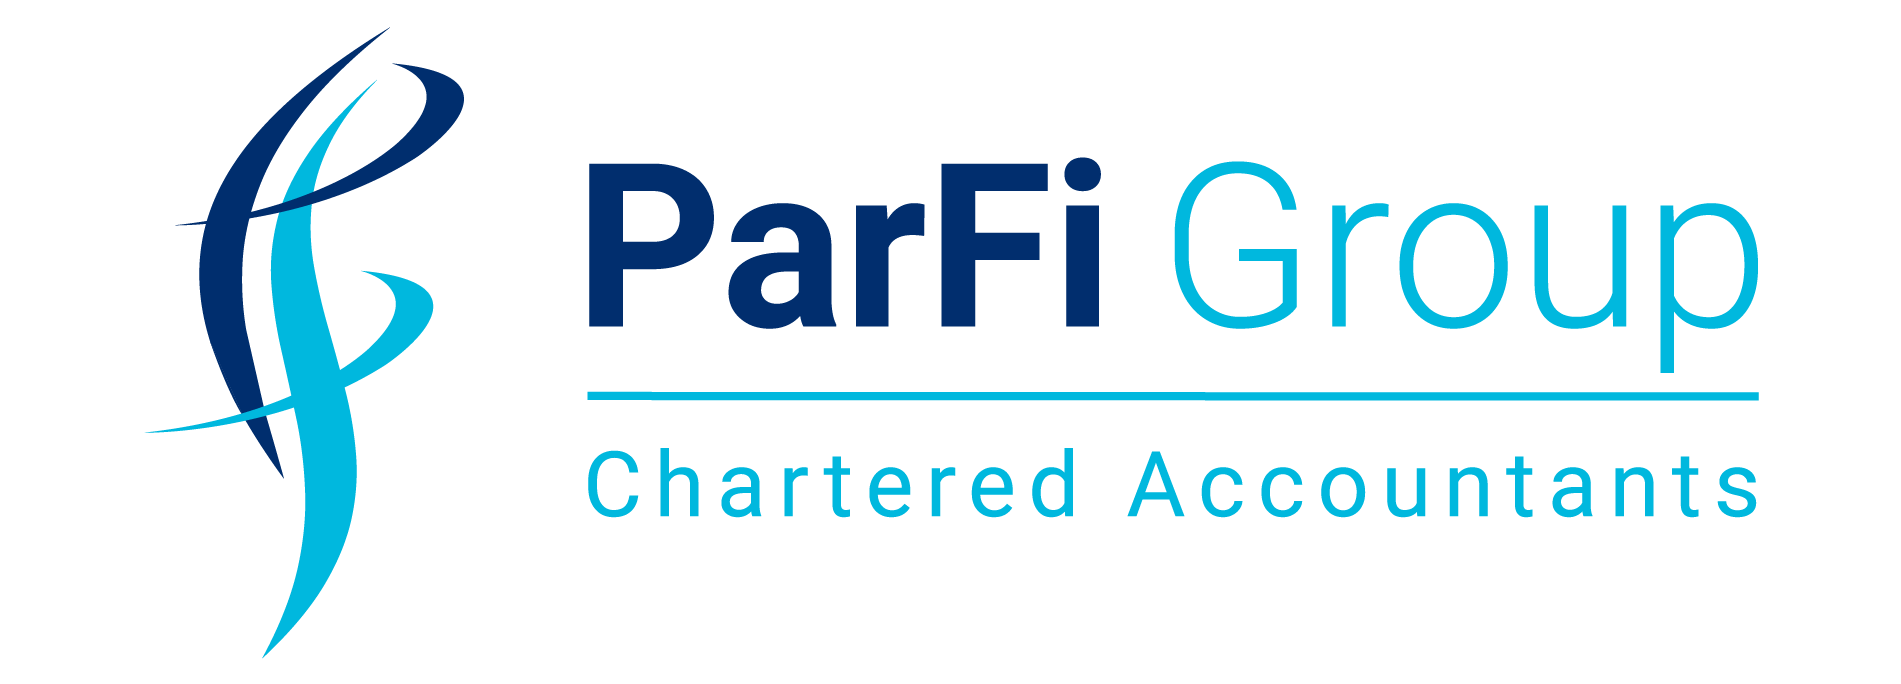 ParFi Group